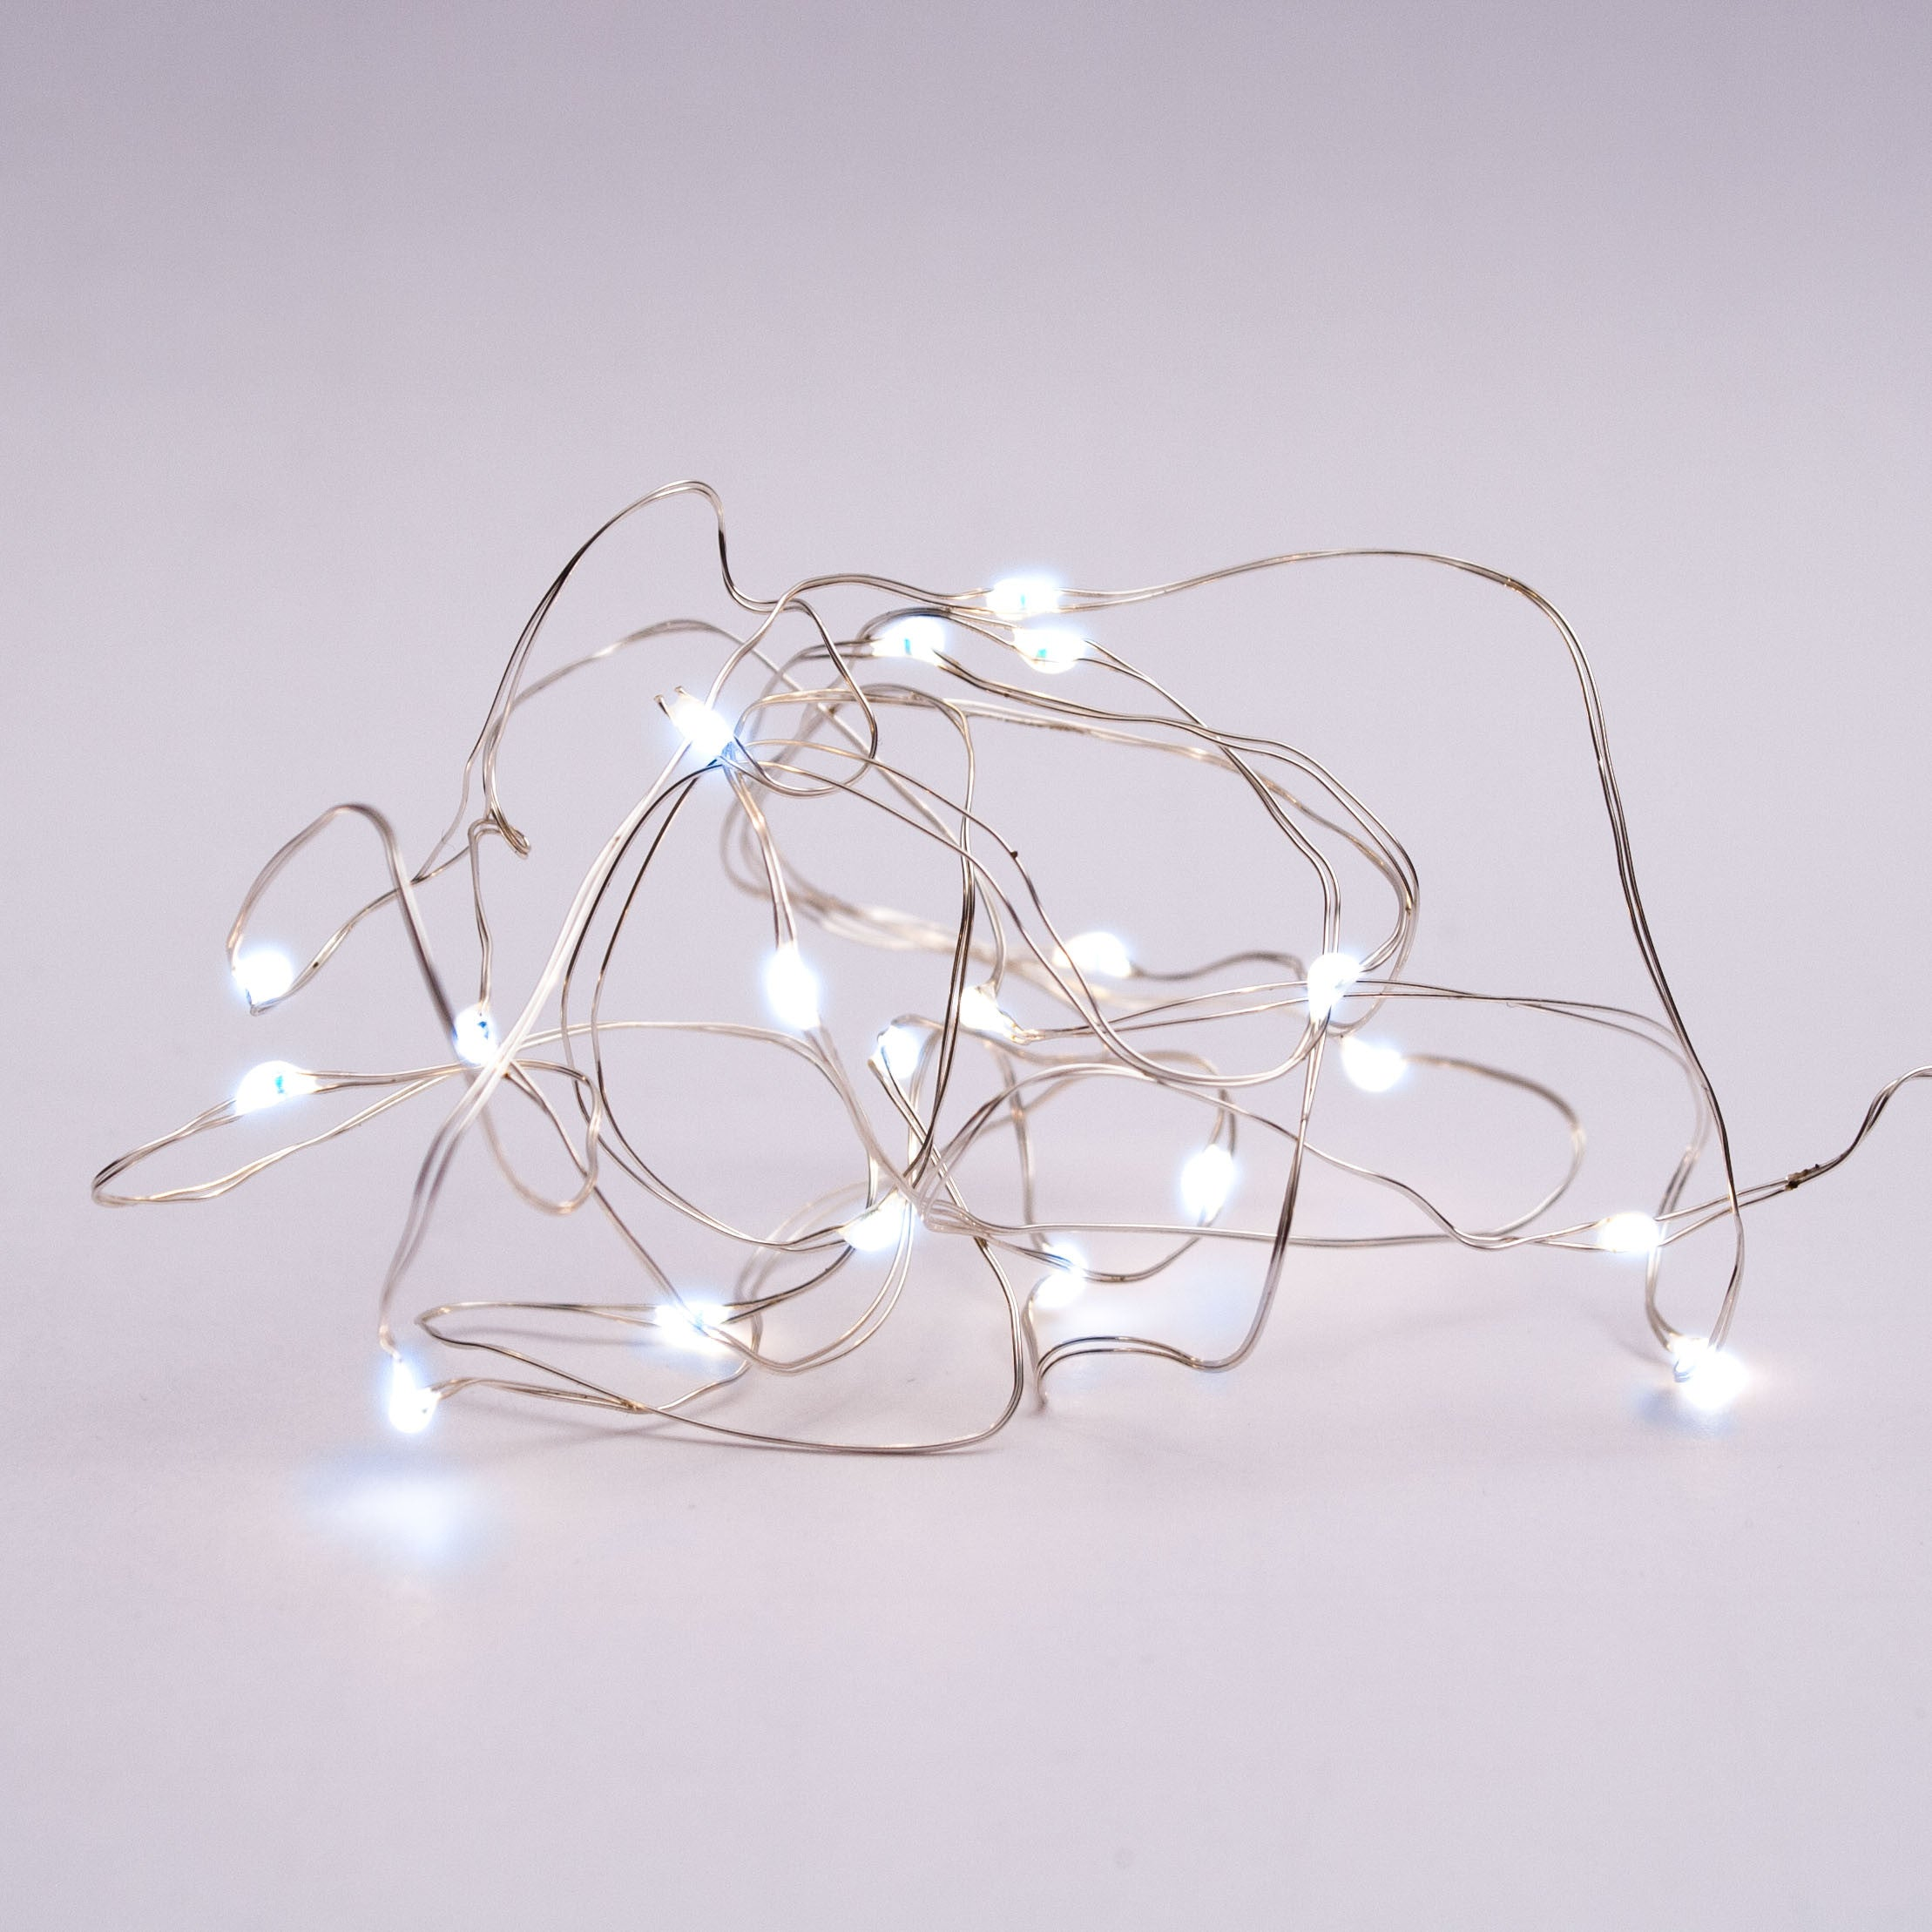 LED Wire Seed Solar Light String Silver Cool White - Iko Iko